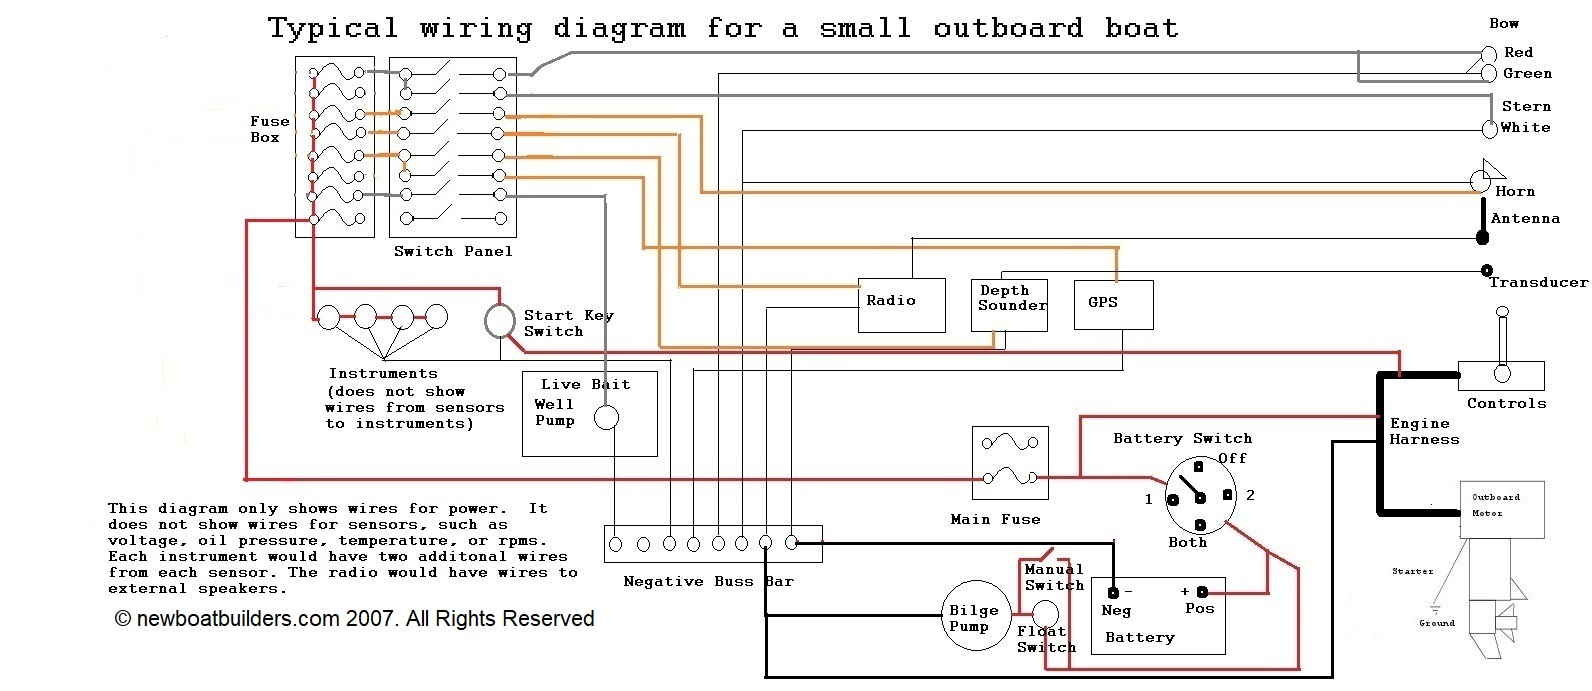 sailboat wiring diagram ac wiring diagram boat wiring schematics sailboat wiring diagram ac #3